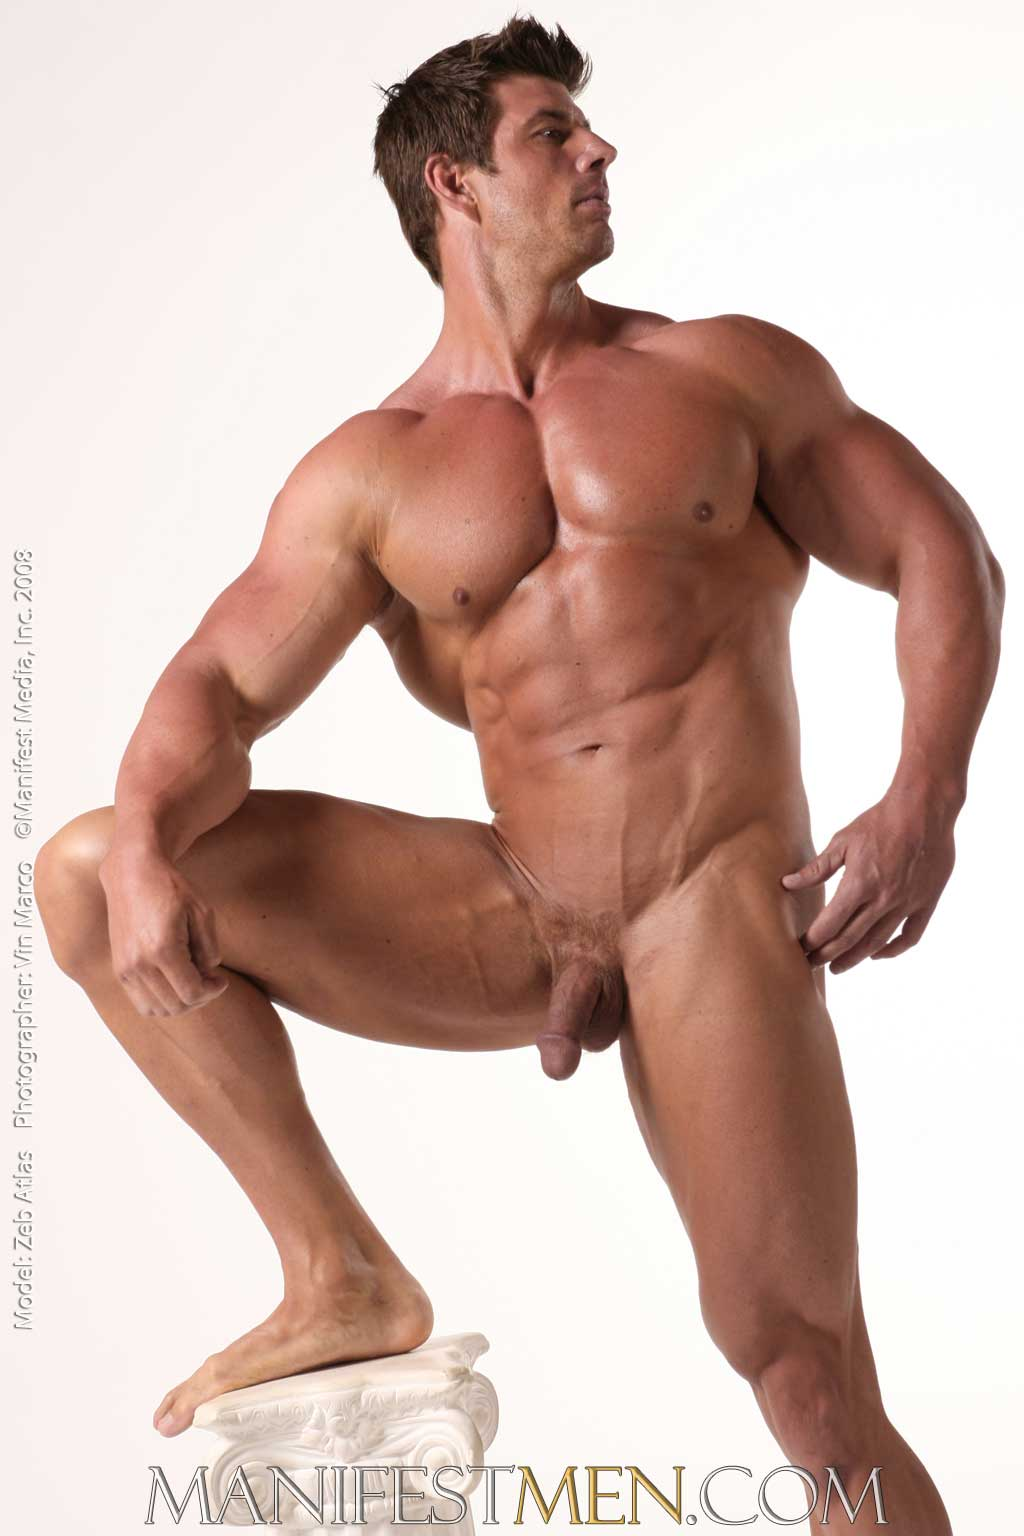 Was Free naked bodybuilders nude consider, that